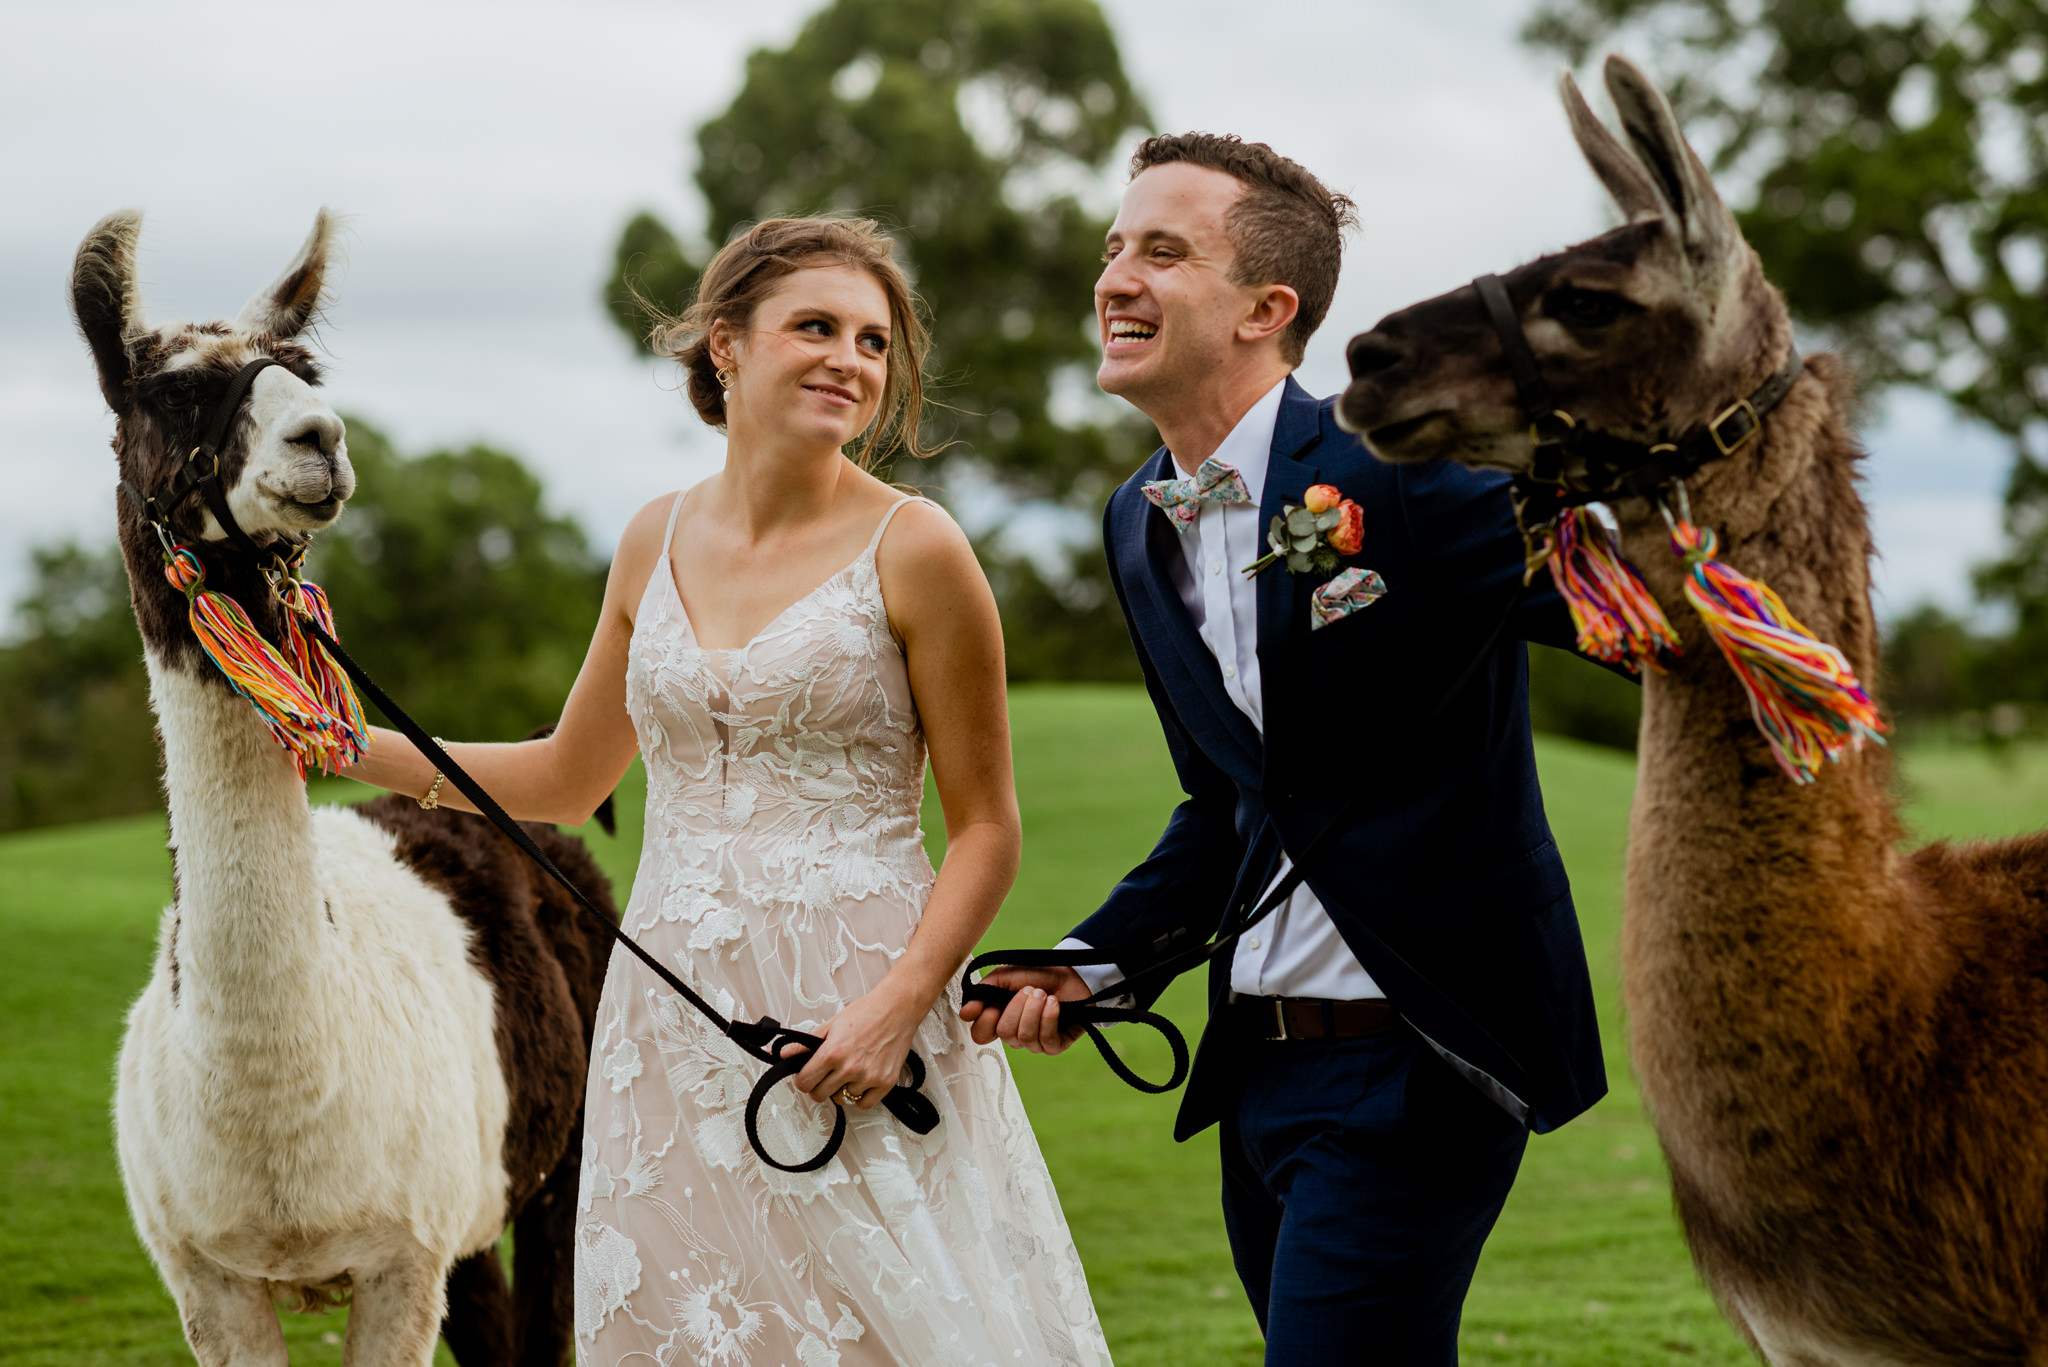 Young newlyweds laughing together with llamas